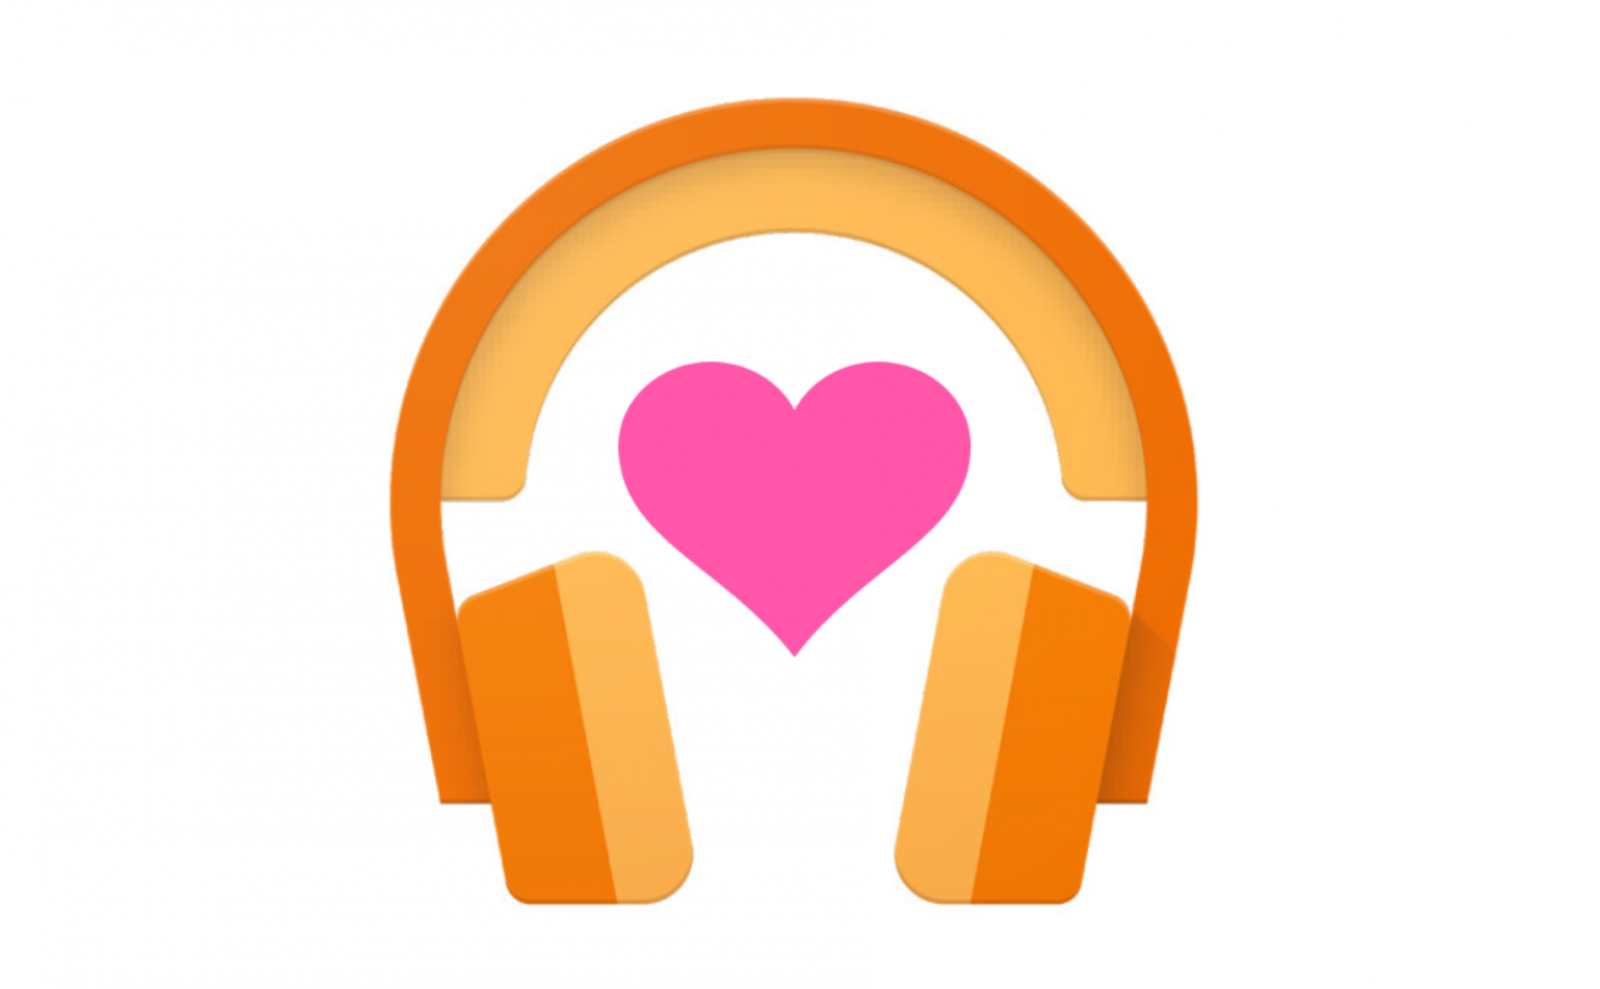 get-half-off-google-play-music-subscriptions-for-valentines-day-image-cultofandroidcomwp-contentuploads201602Play-Music-Valentines-png